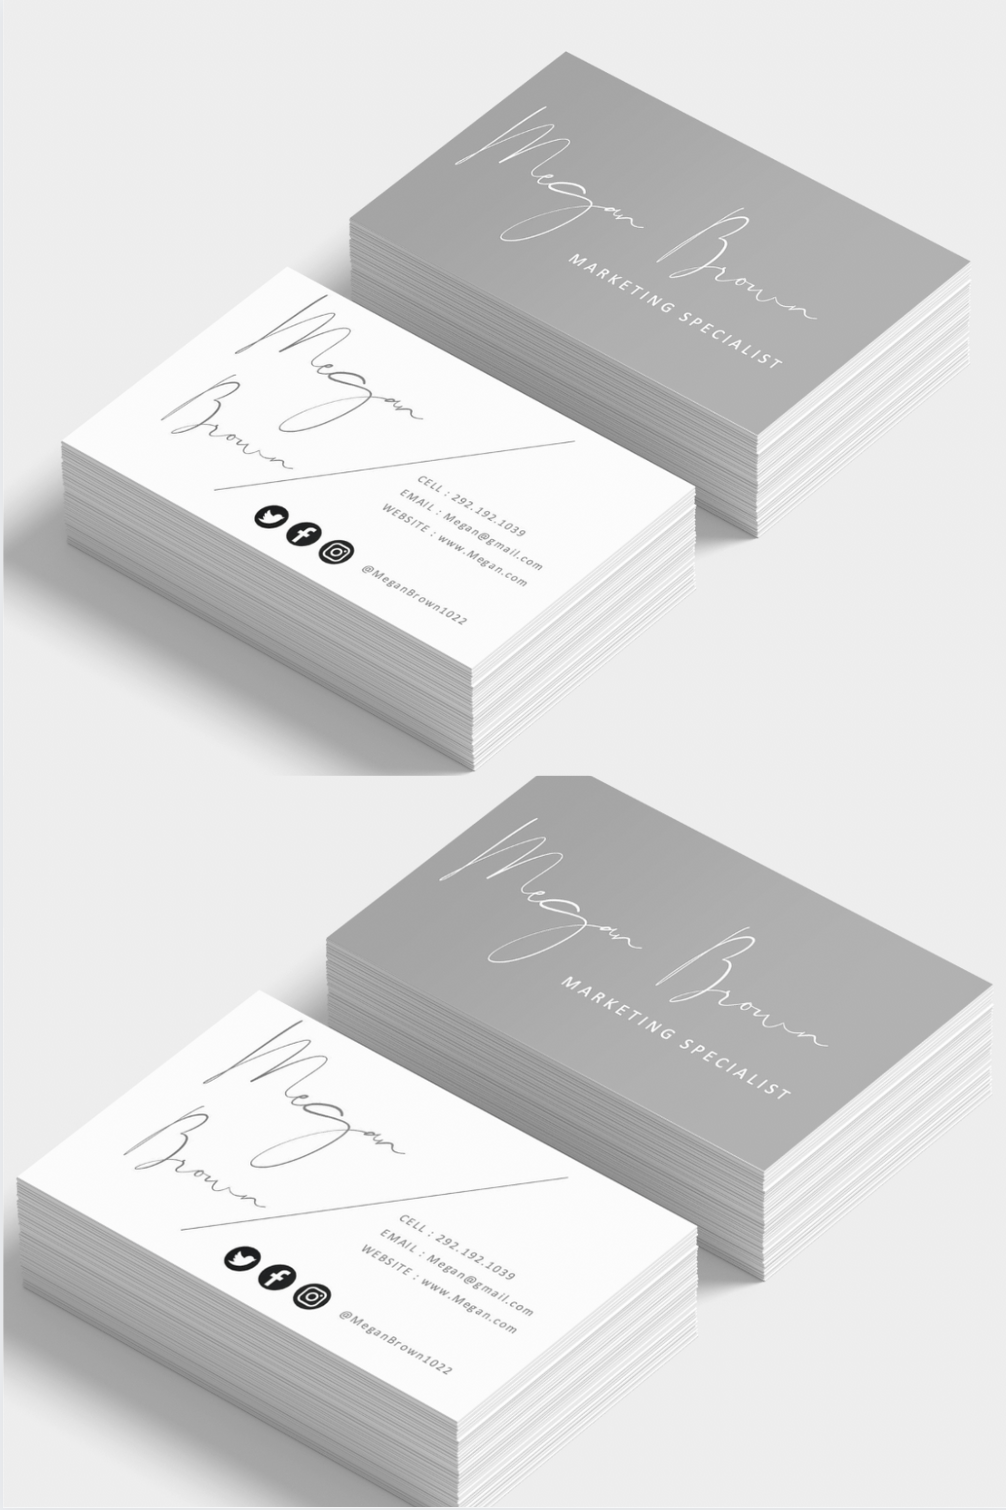 Printable Business Card Templates Editable Business Cards Personalized Calling Cards Gray Printable Business Cards Personal Cards Business Cards